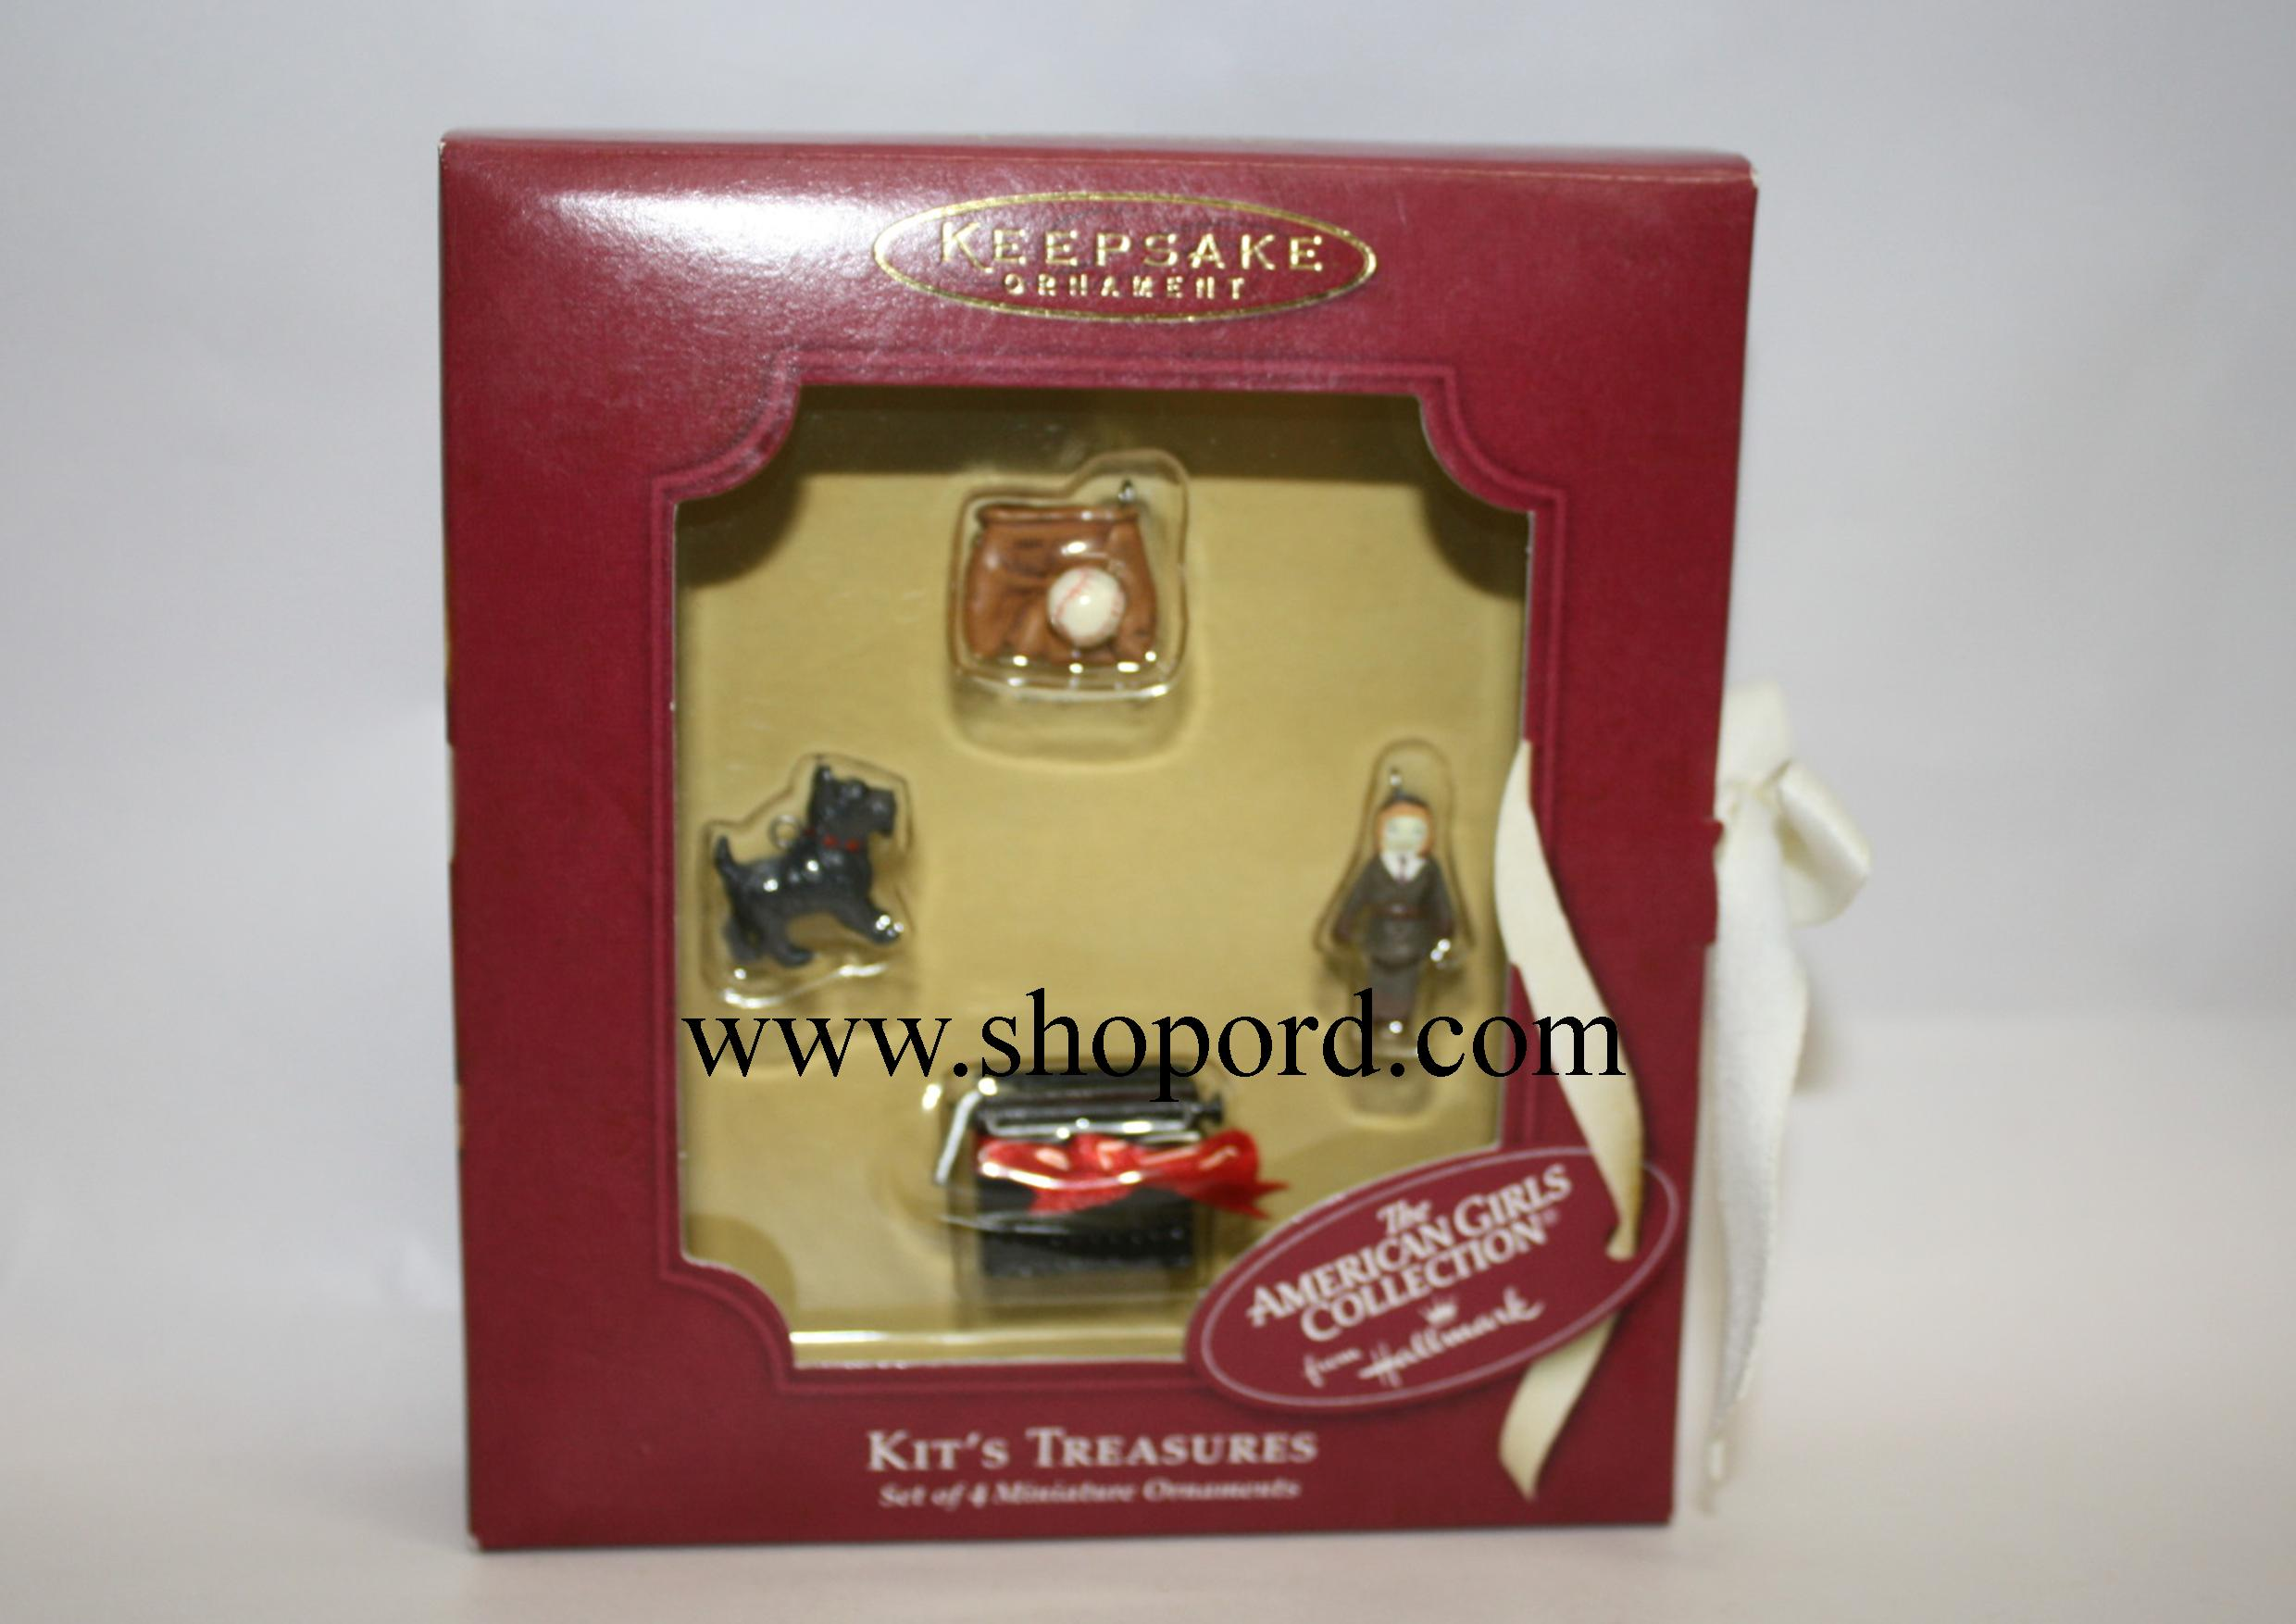 Hallmark 2002 American Girl Kits Treasures set of 4 Miniature Ornament QAC6408